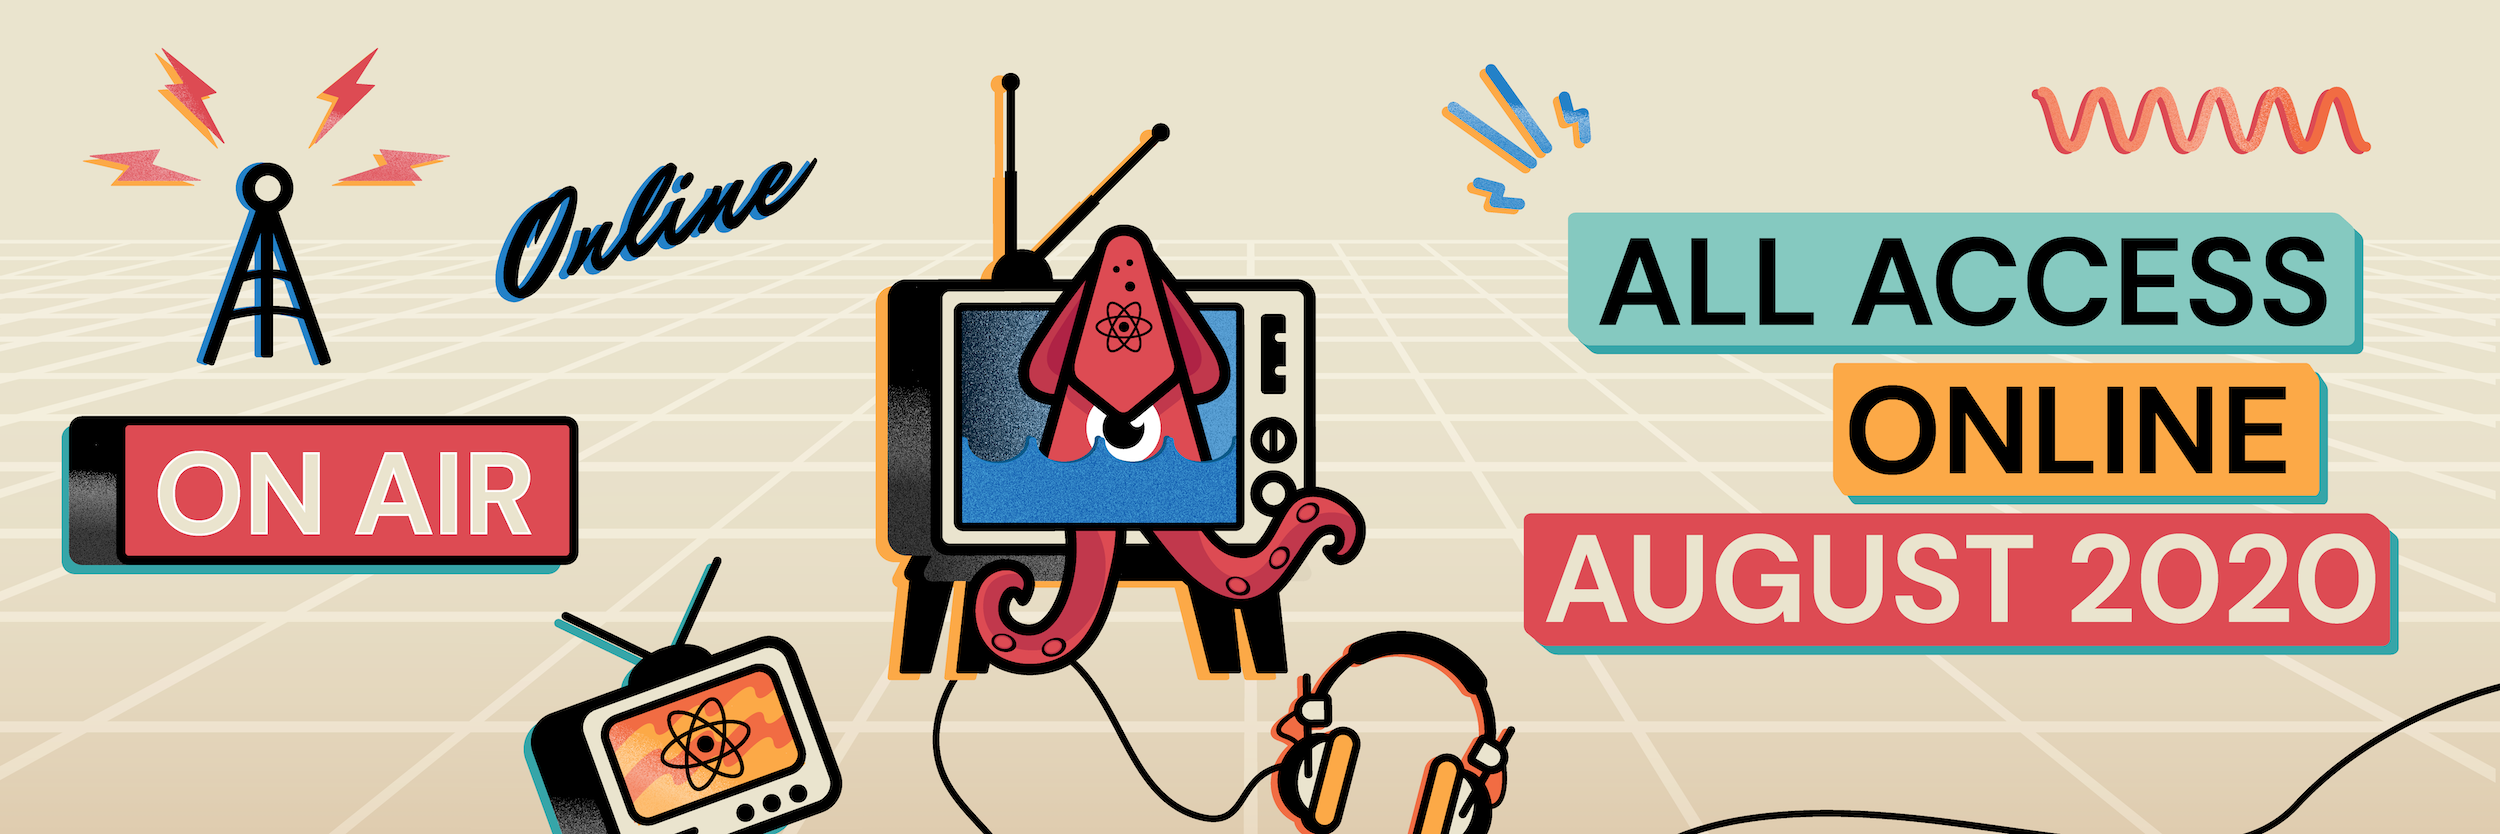 React Rally 2020 Twitter banner with squid coming out of an old TV